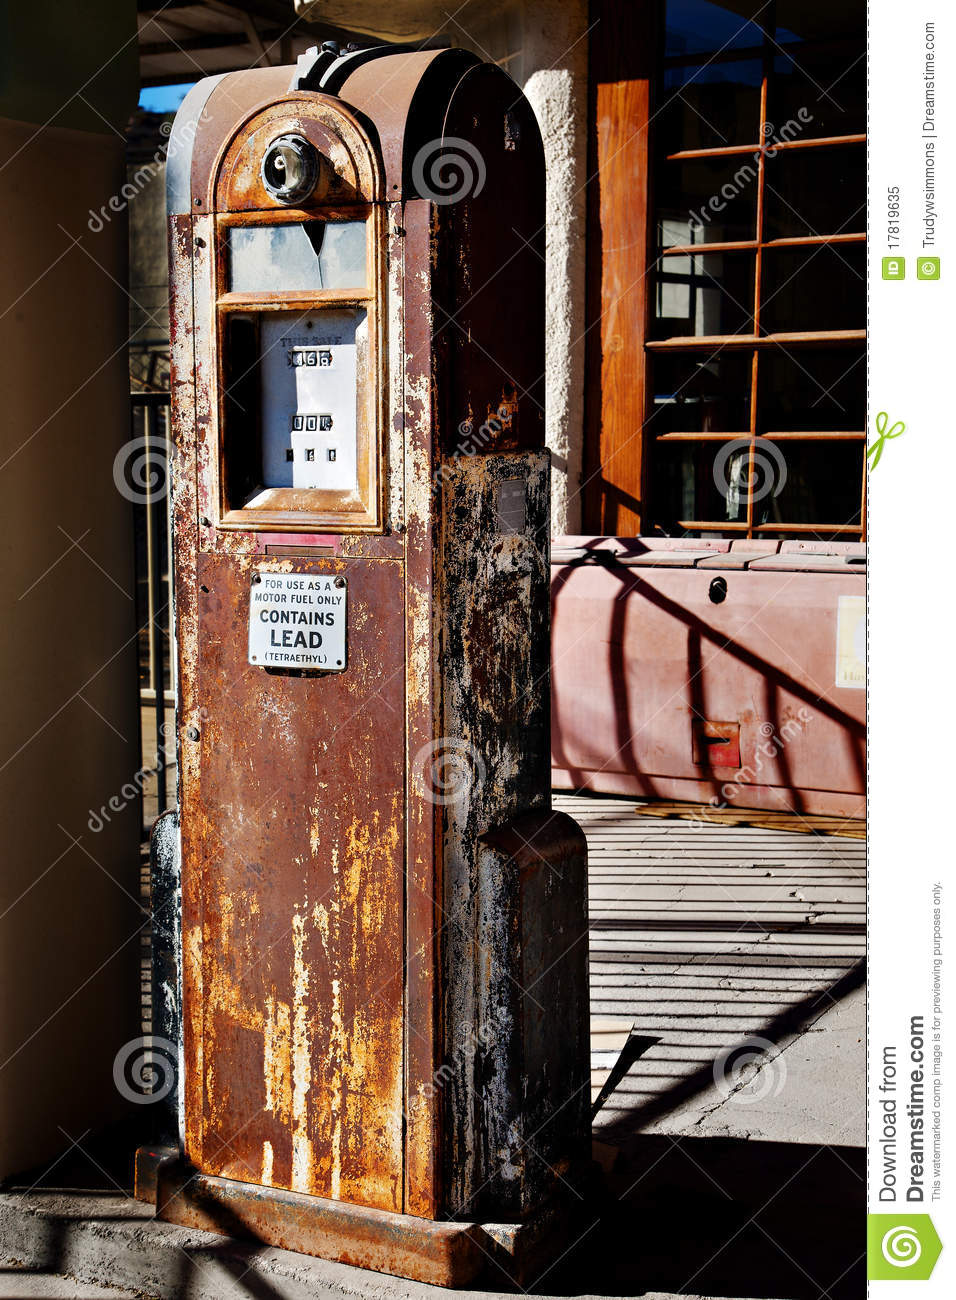 Old Rusty Gas Pump With Interesting Shadows Stock Image - Image of